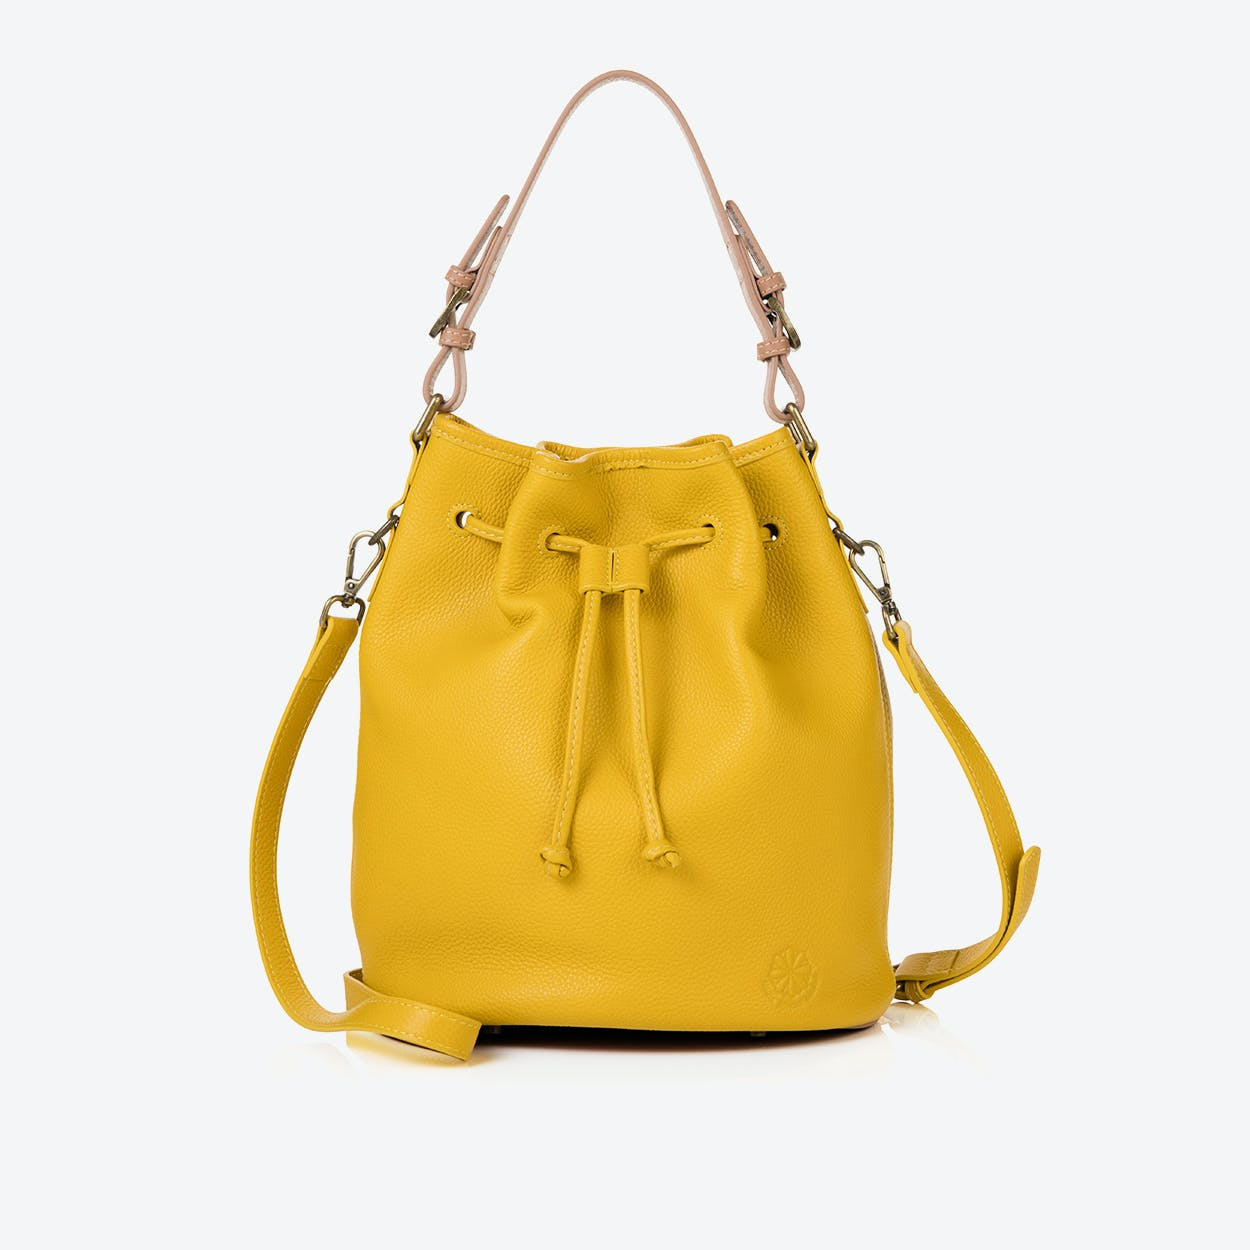 Islington Bucket Bag in Mustard